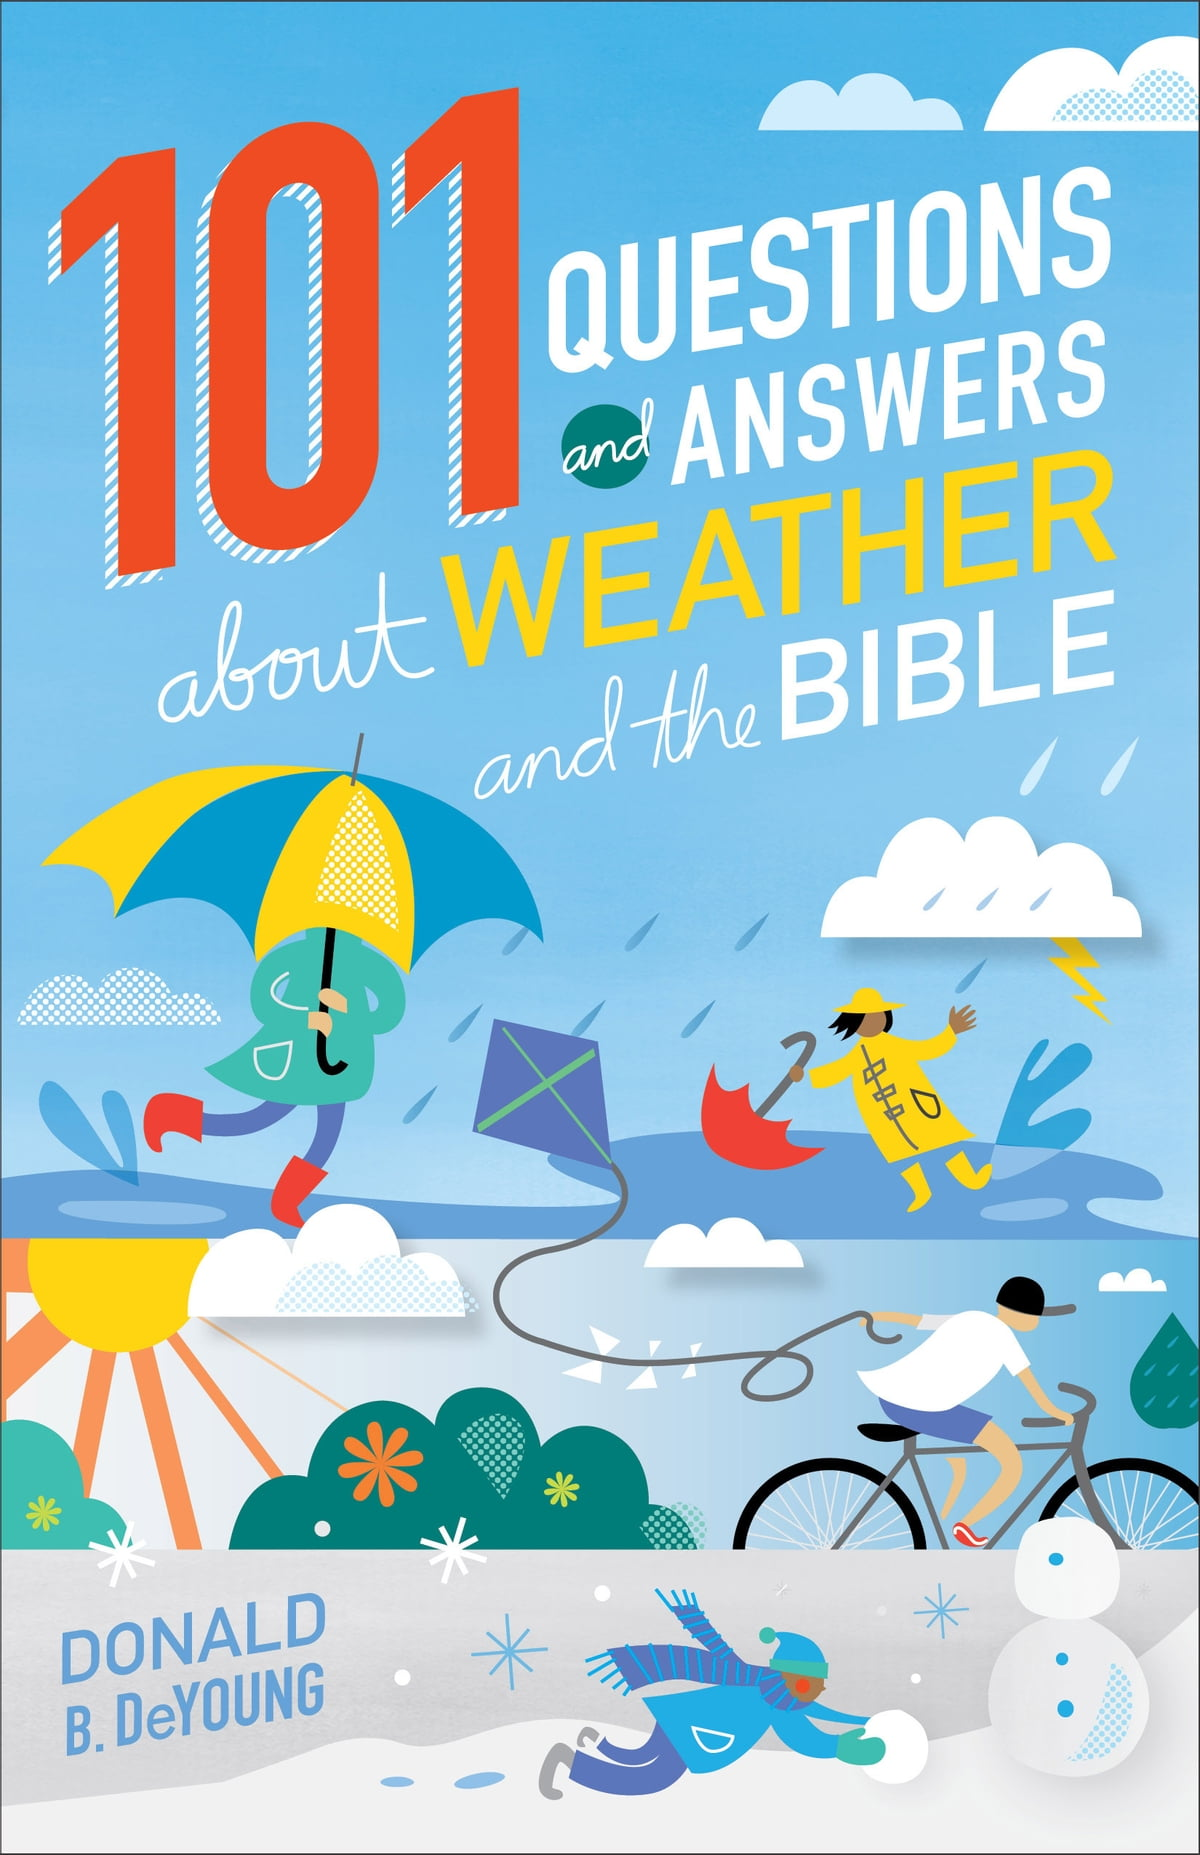 101 Questions and Answers about Weather and the Bible eBook by Donald B.  DeYoung - 9781441246271 | Rakuten Kobo